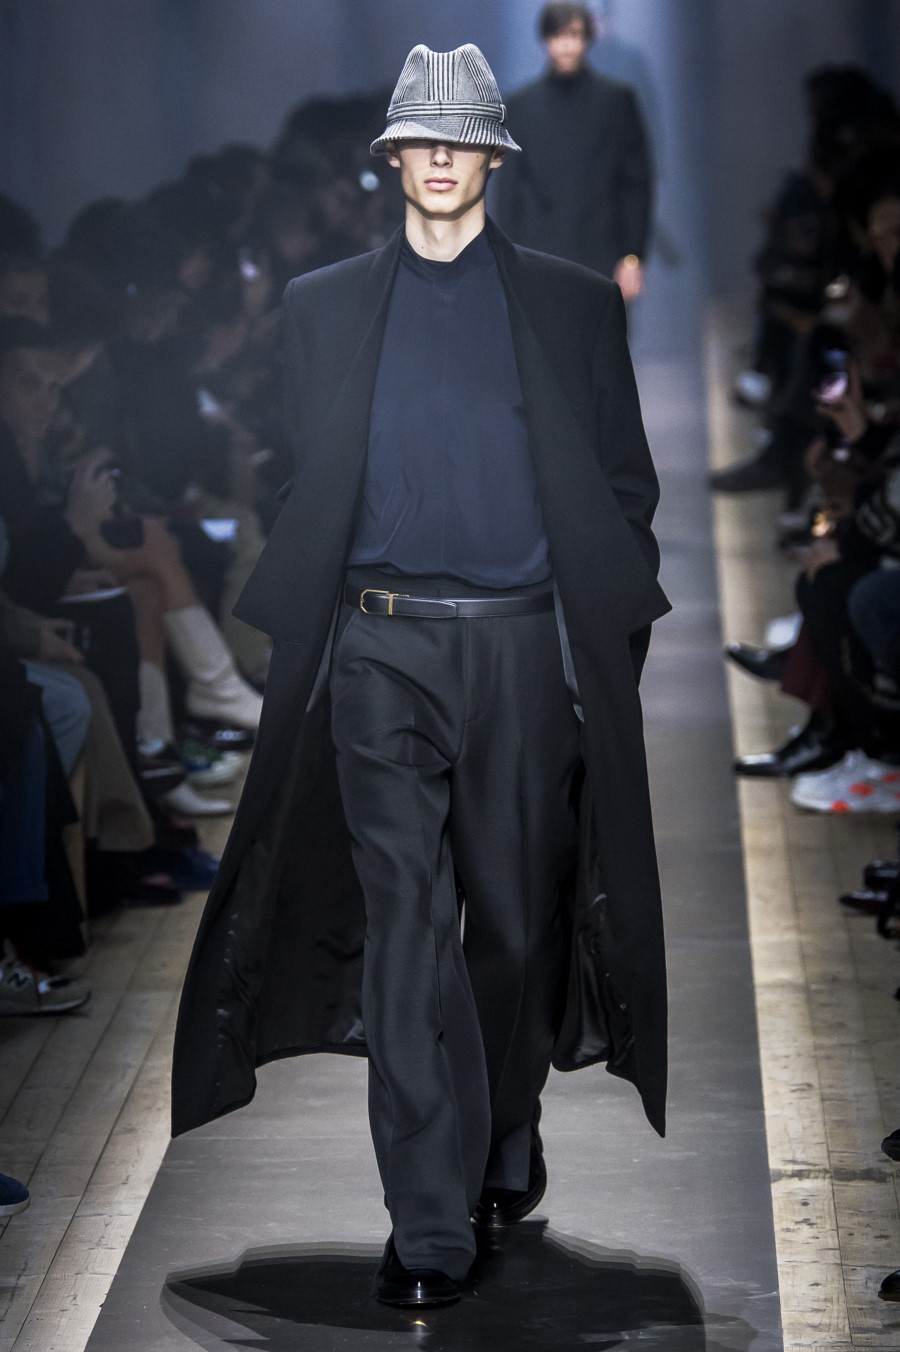 Dunhill Fall Winter 2019 - Paris Fashion Week